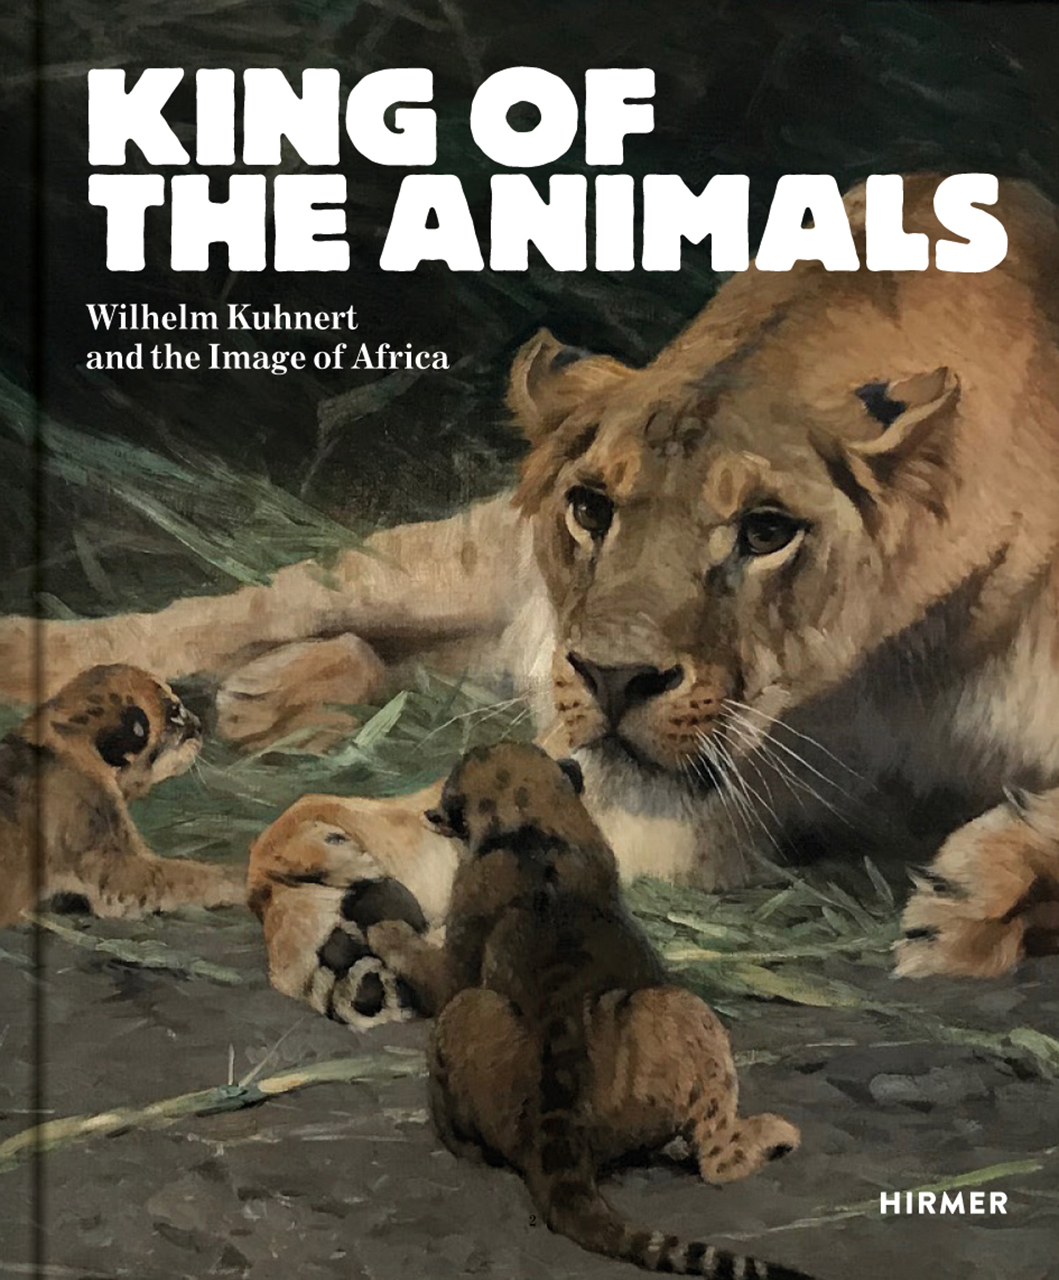 King of the Animals: Wilhelm Kuhnert and the Image of Africa